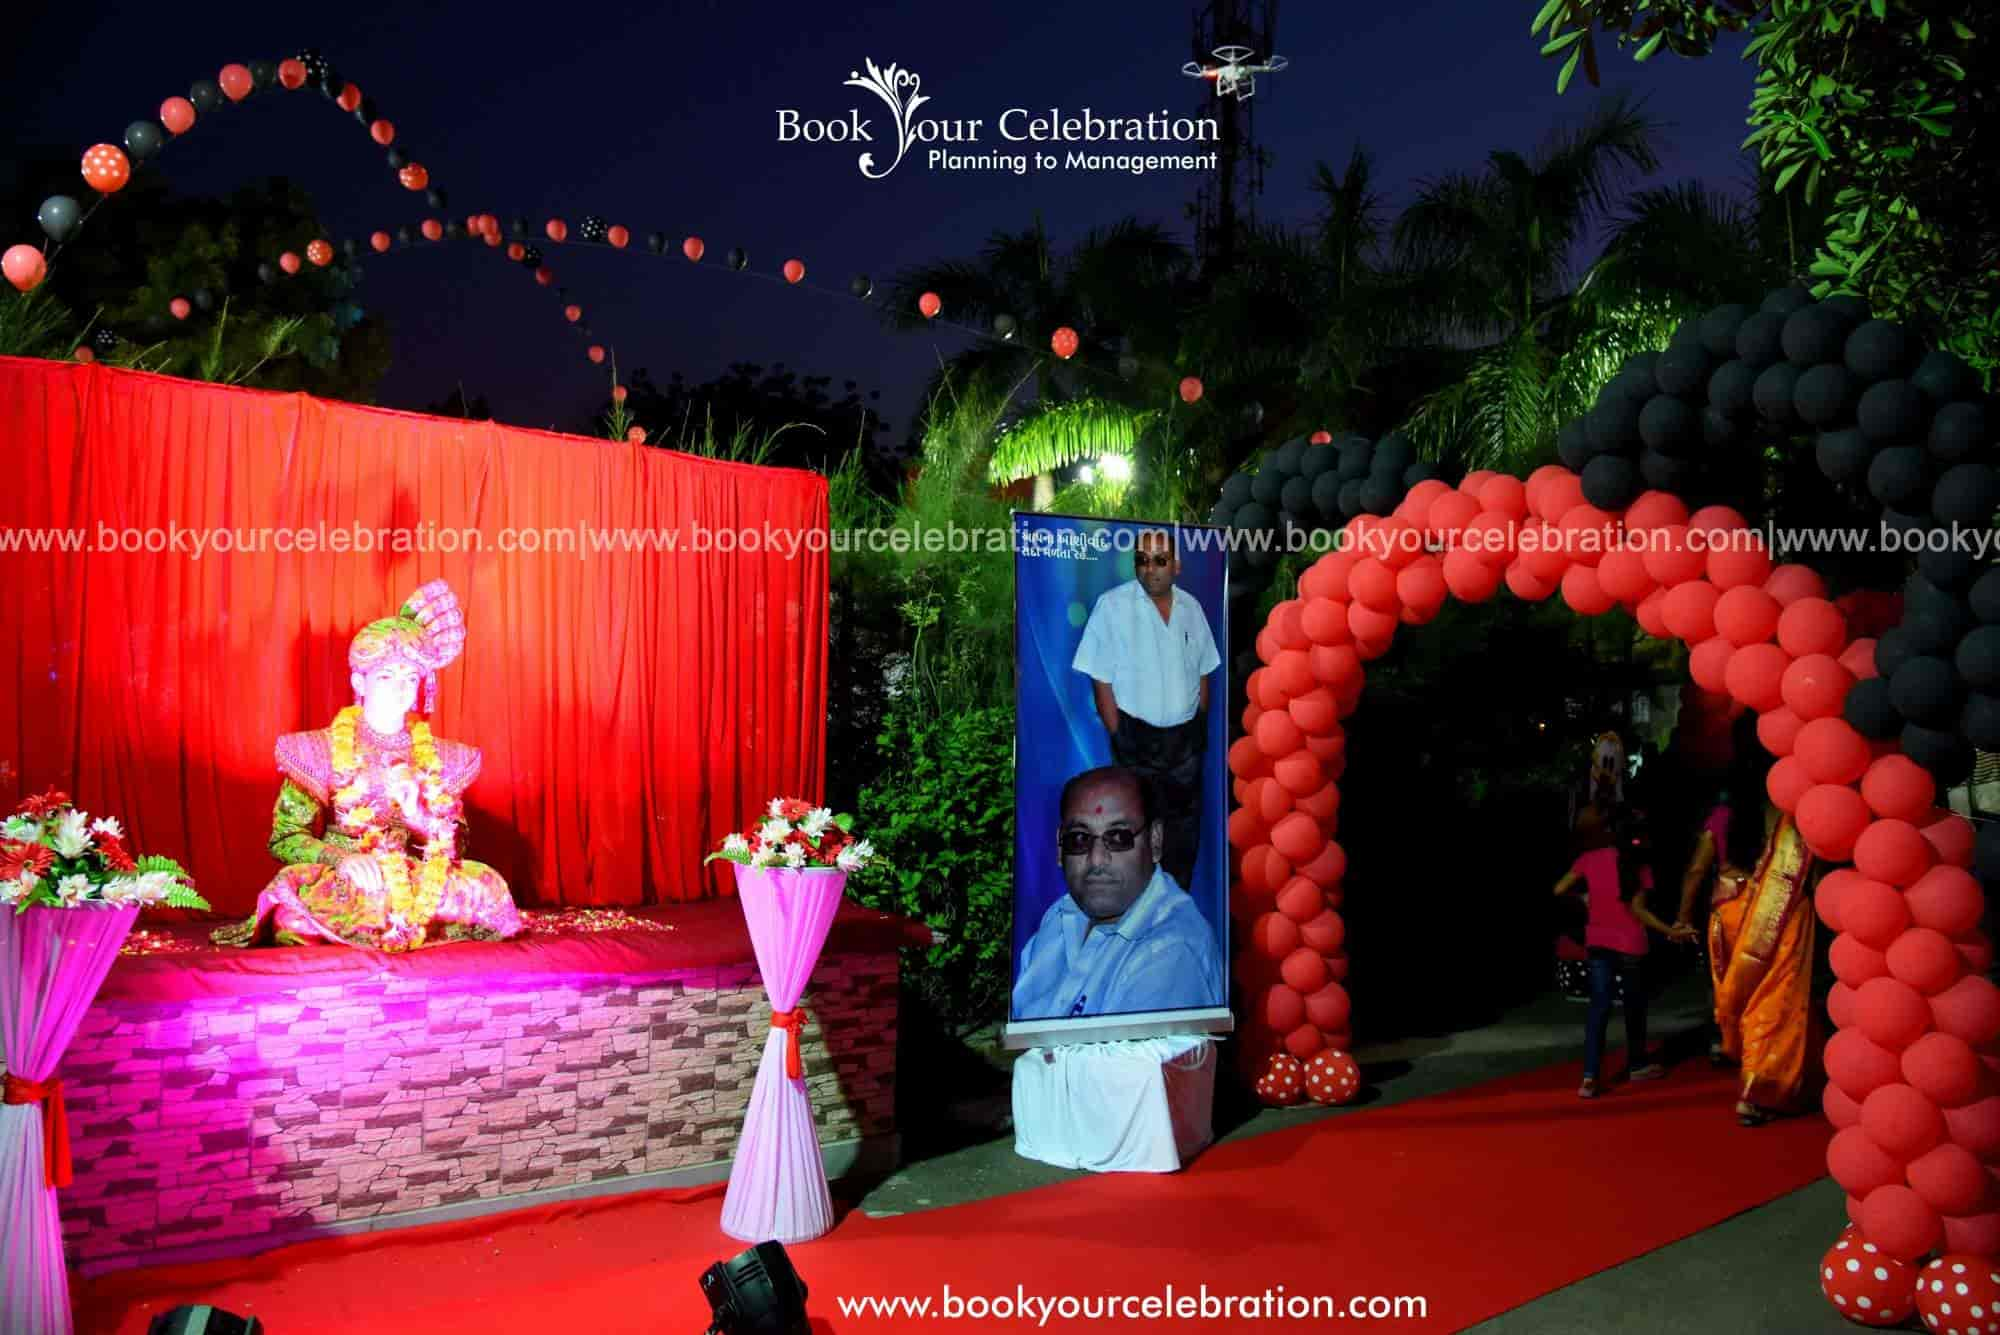 Book Your Celebration Vasna Road Birthday Party Organisers in